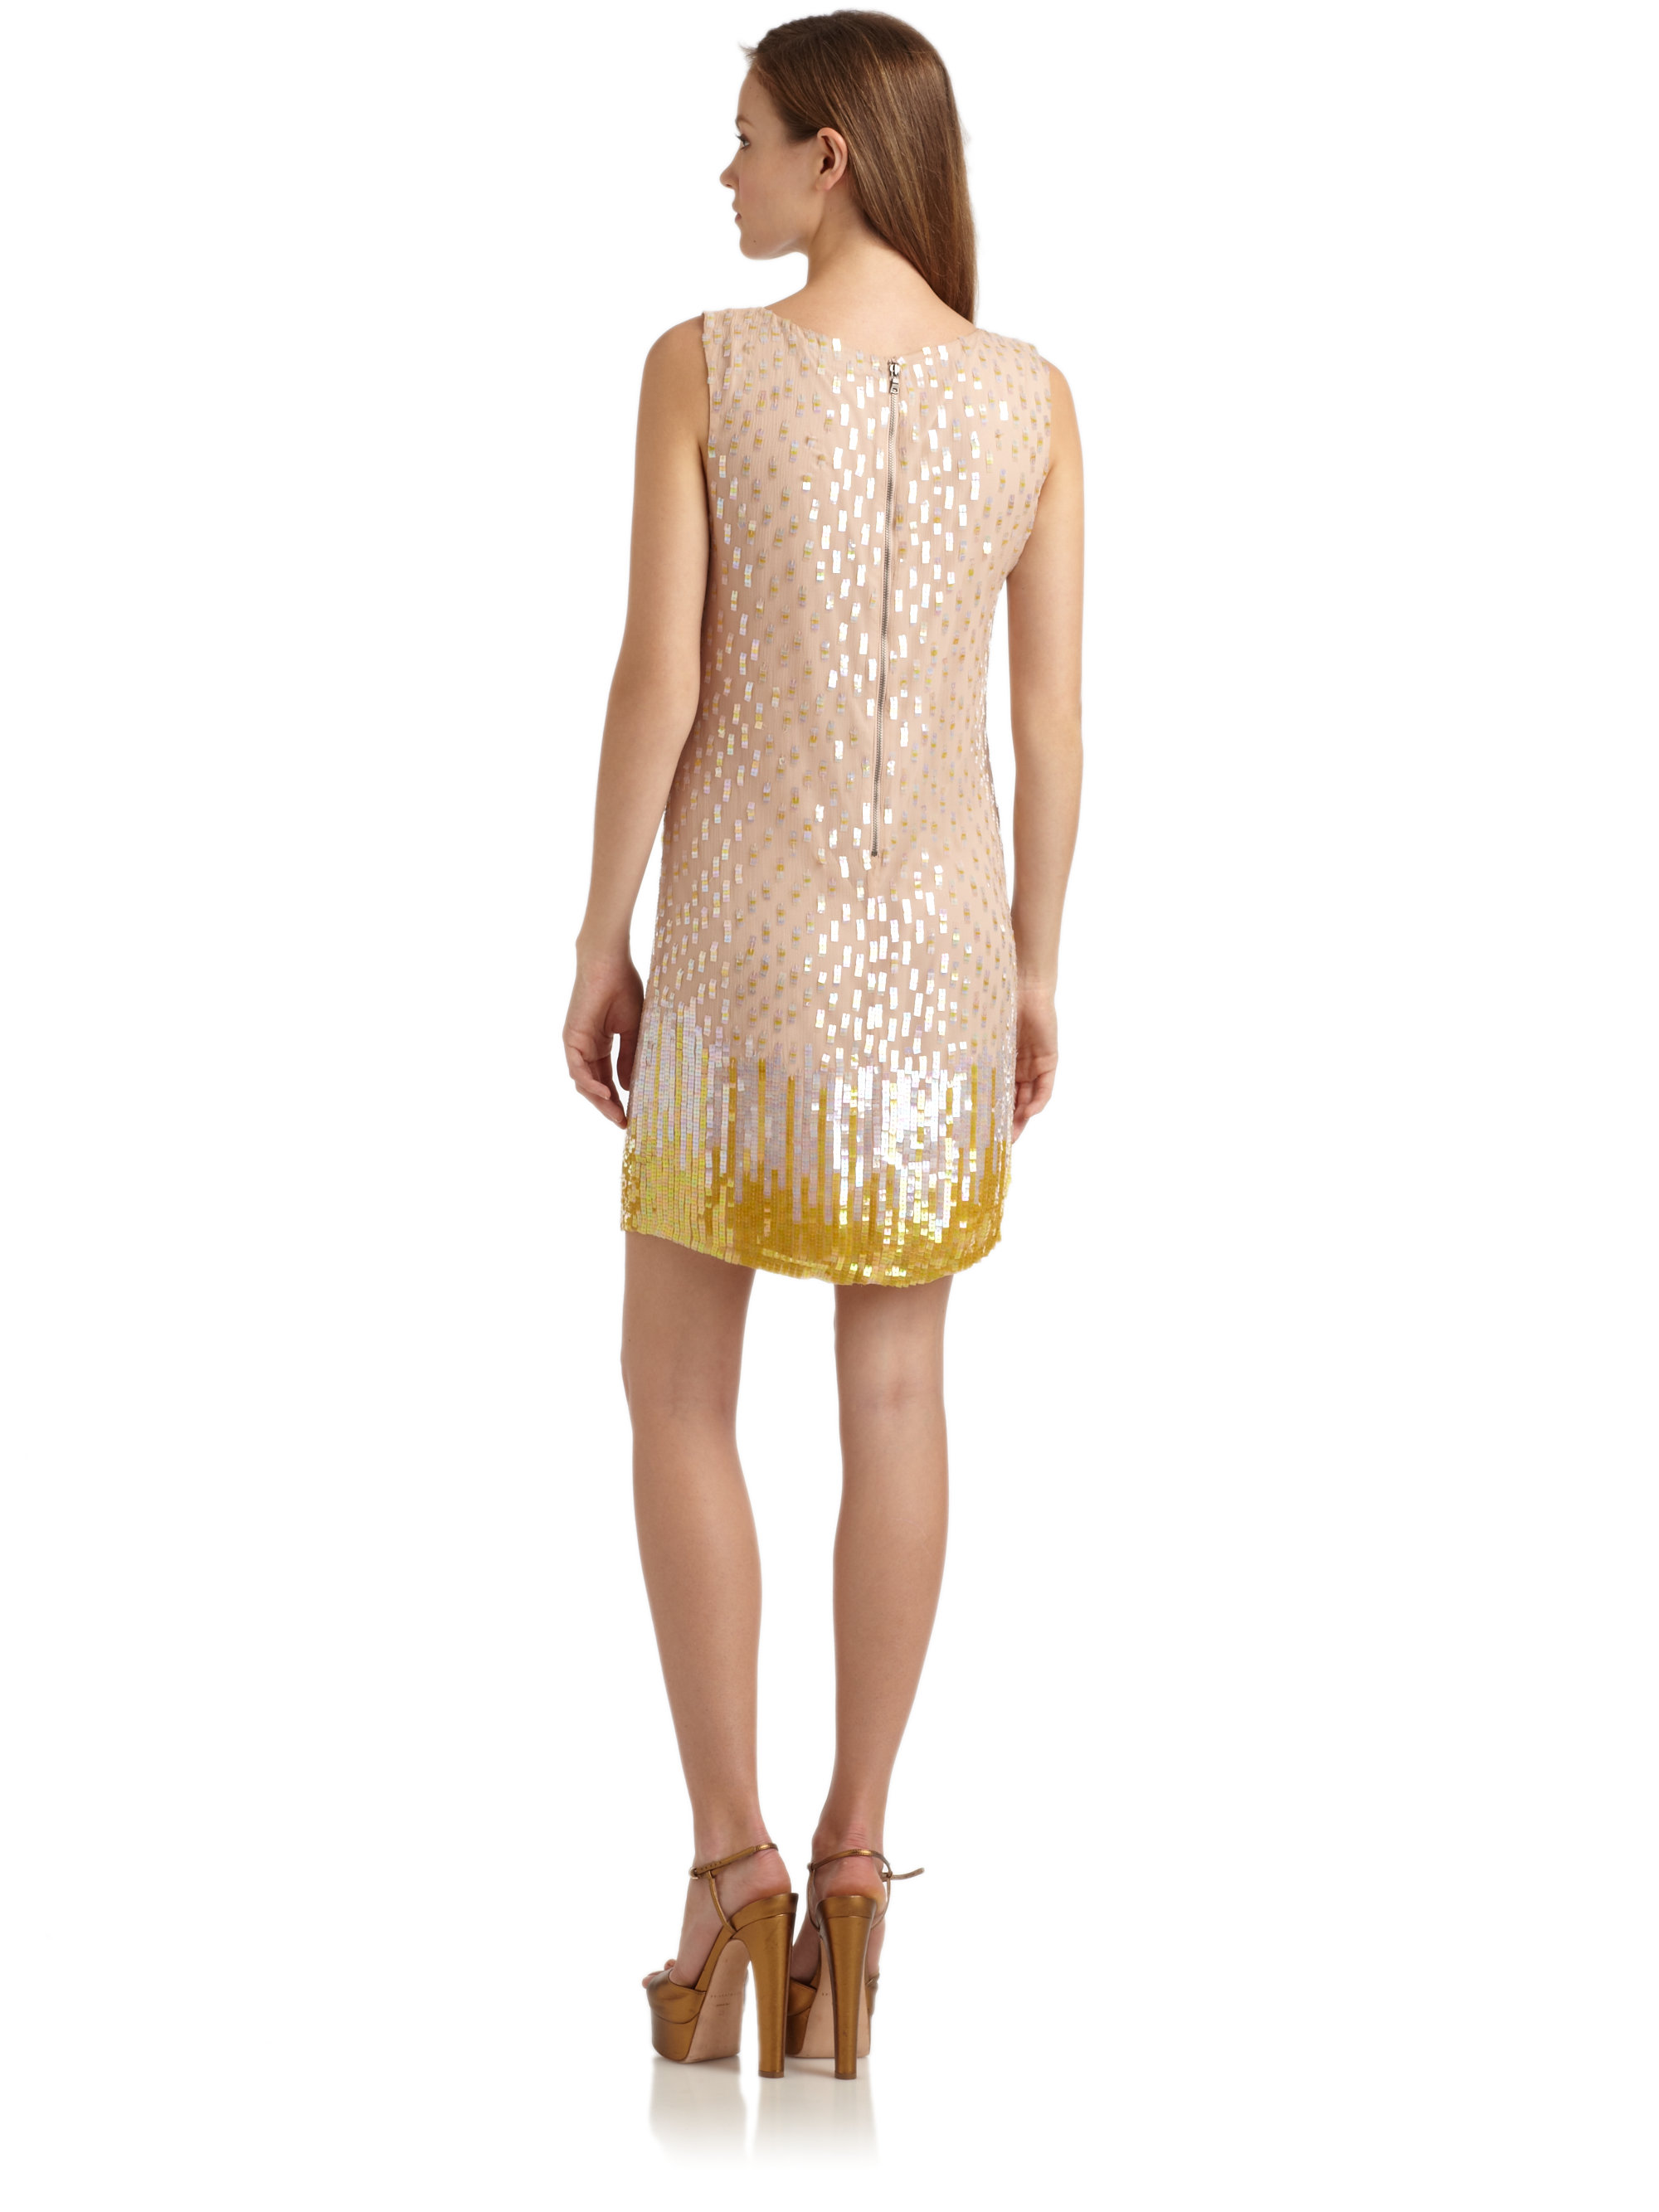 Lyst - Alice  Olivia Camille Sequined Ombre Shift Dress In Natural-1106